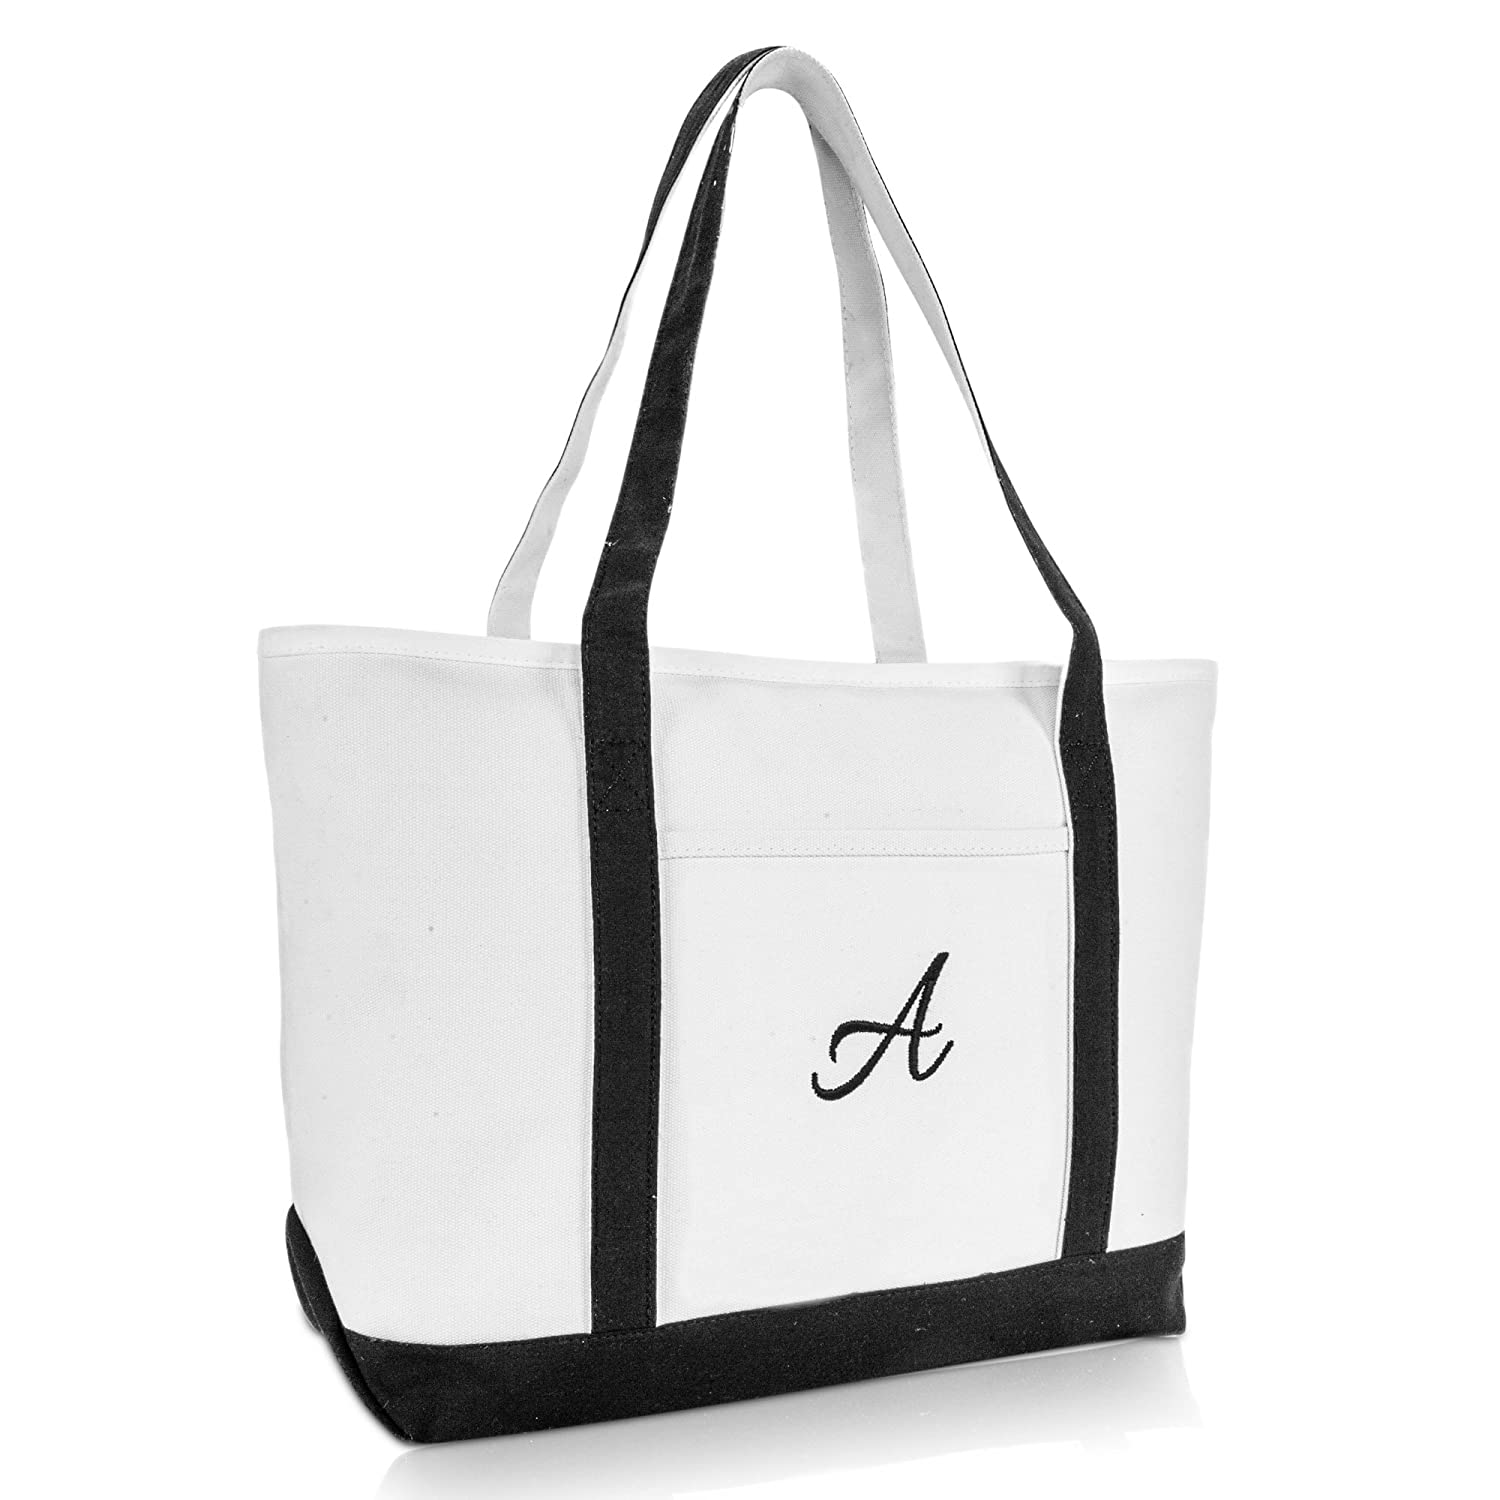 9258b9f3cc Amazon.com: DALIX Premium Women's Tote Bags Large Tote Bag Personalized  Gifts Black A: Shoes